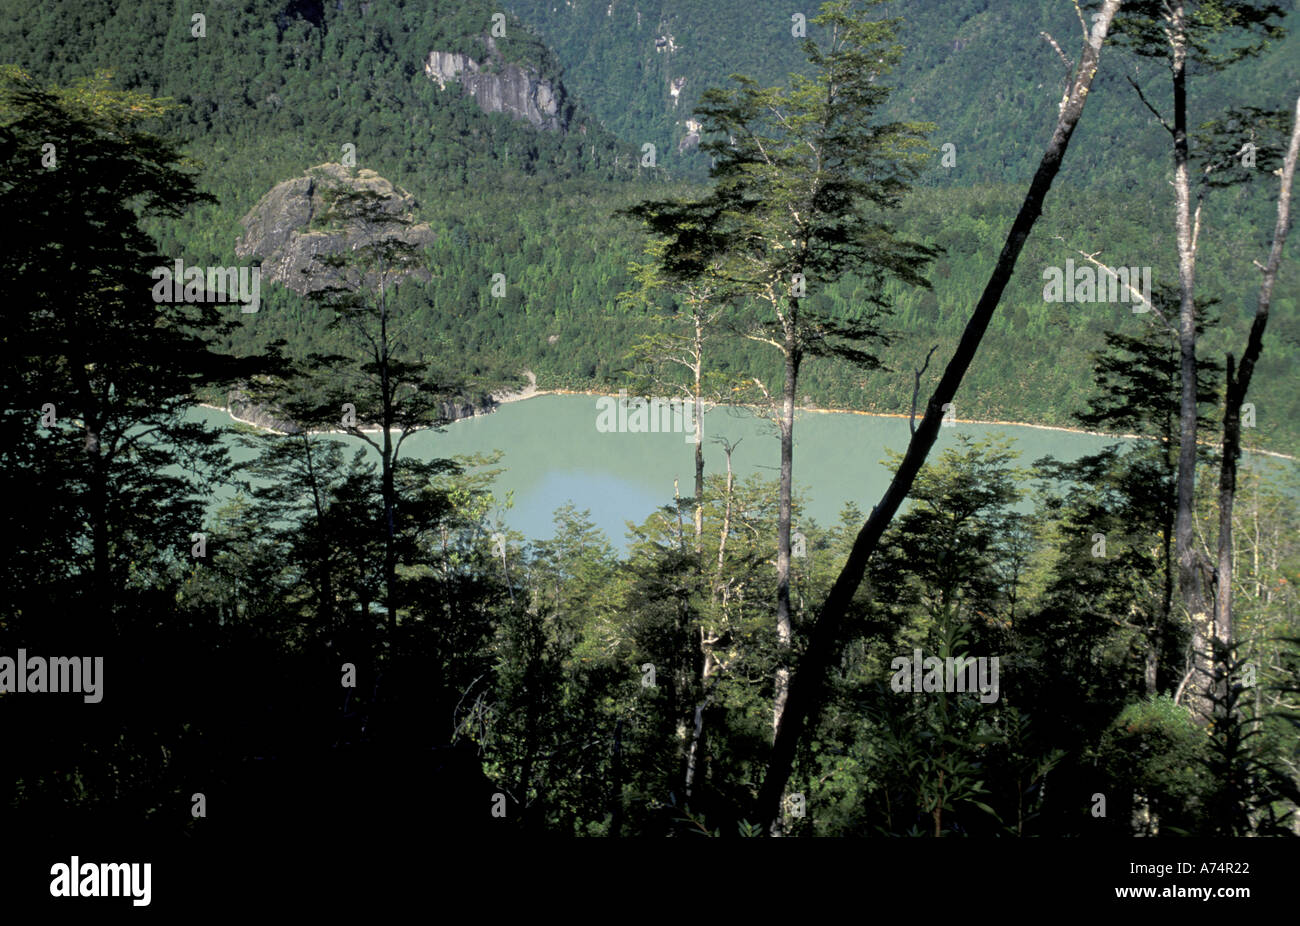 South America, Chile, Patagonia, Aisen,  Queulat National Park, Tempanos lagoon - Stock Image